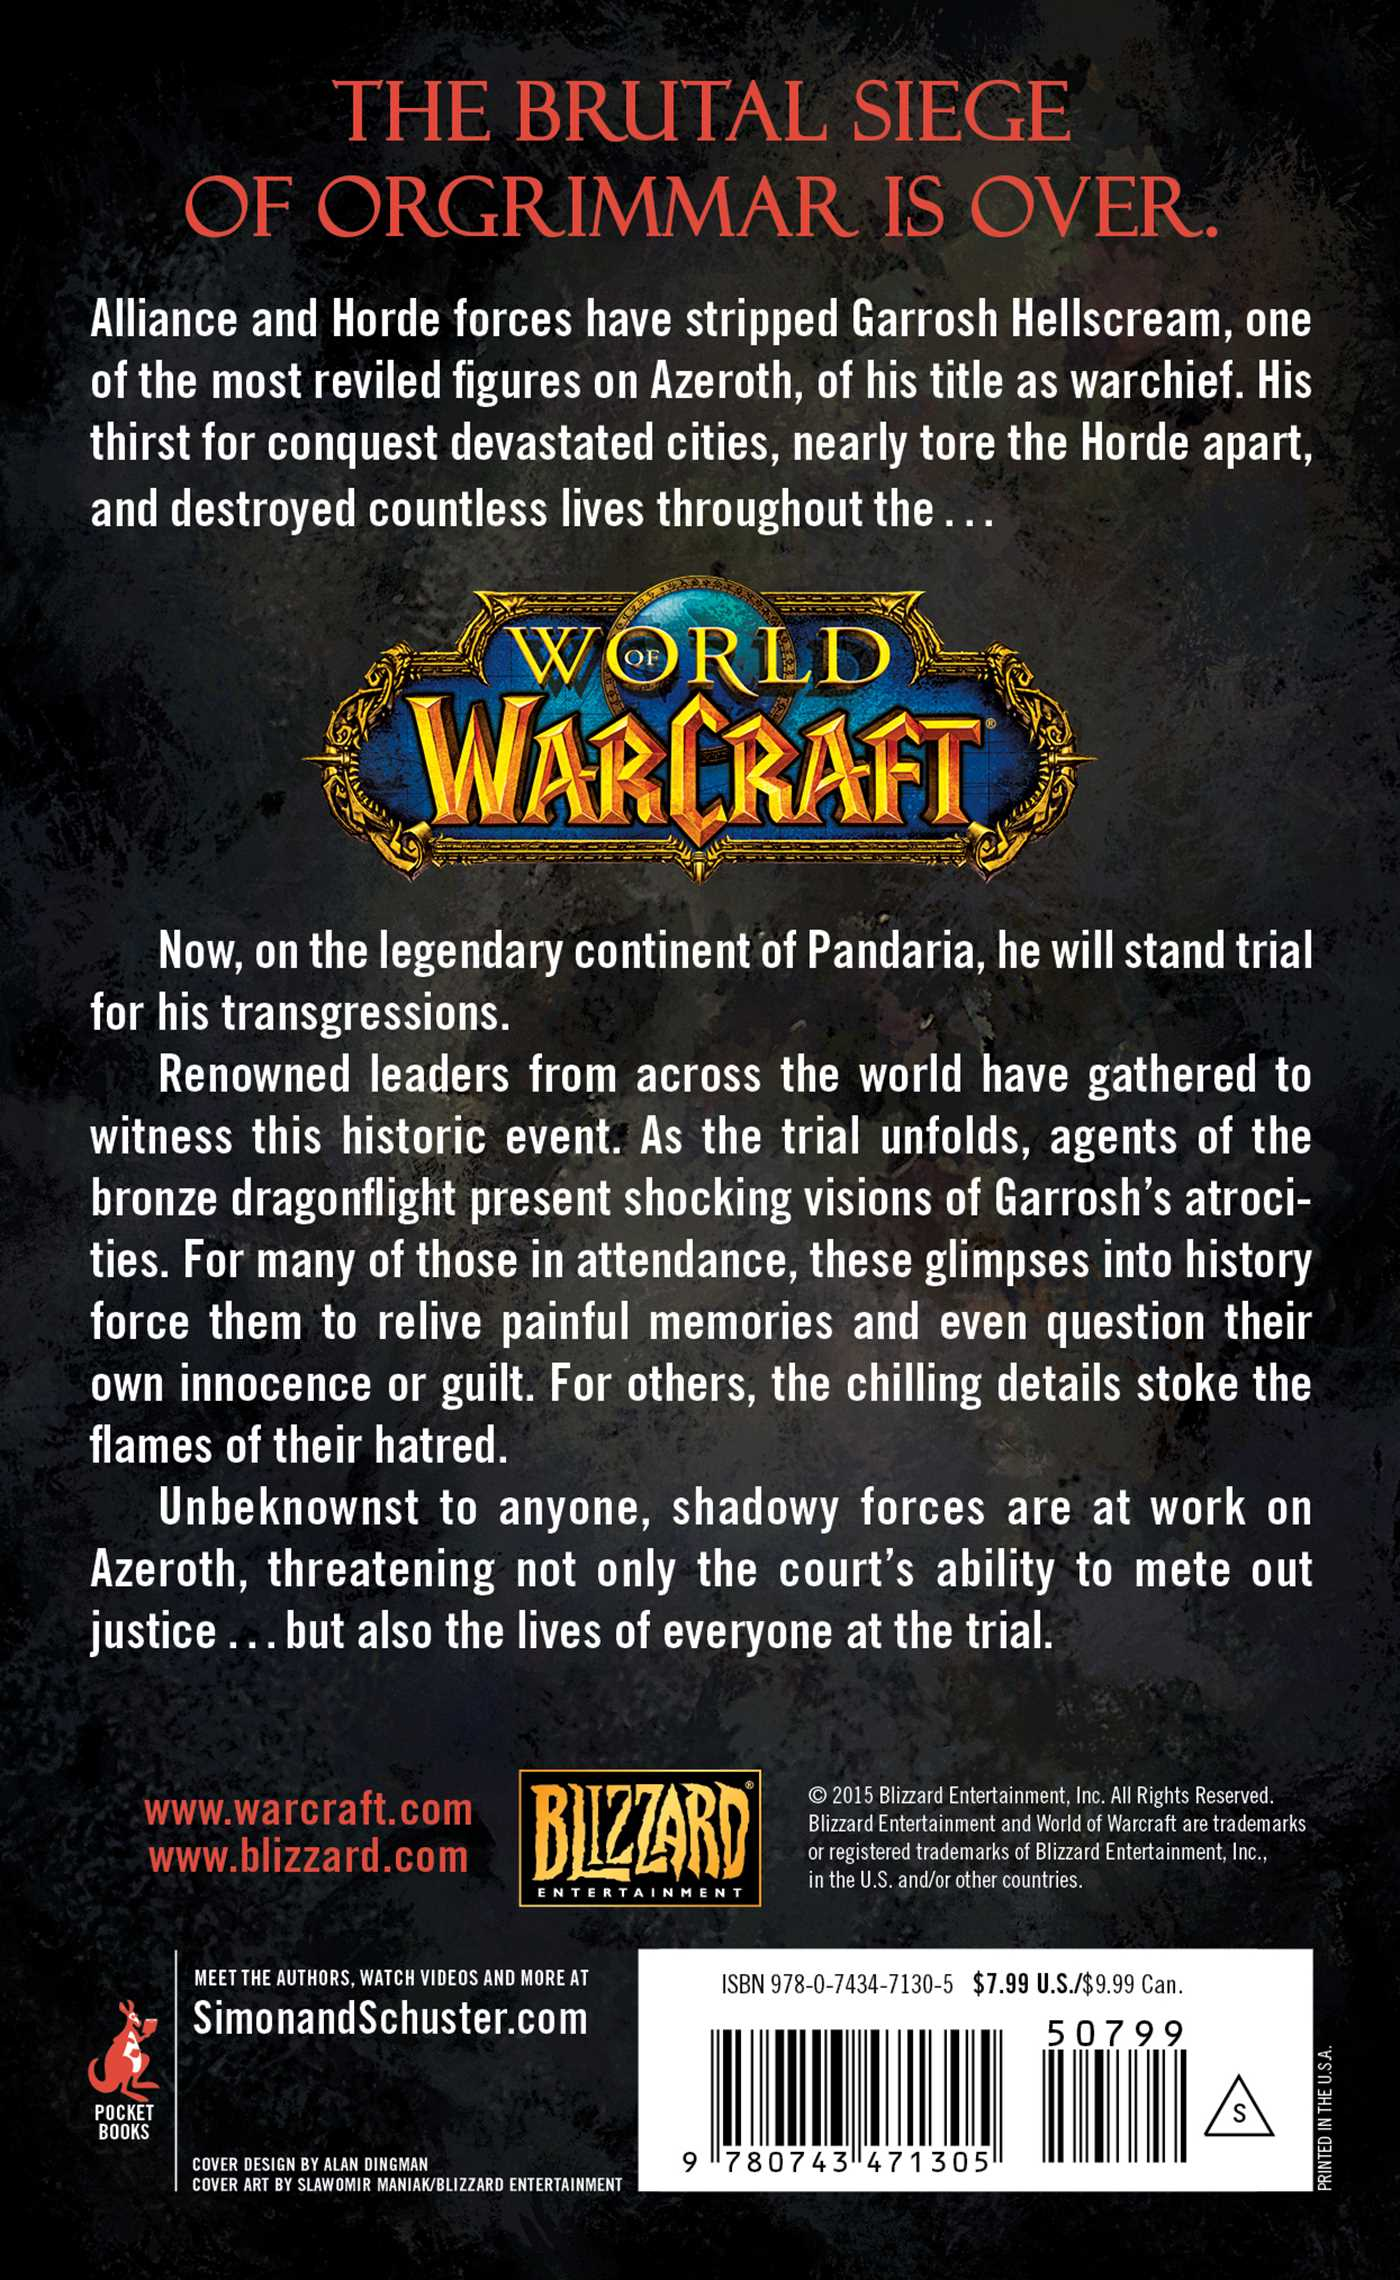 World of warcraft war crimes 9780743471305 hr back